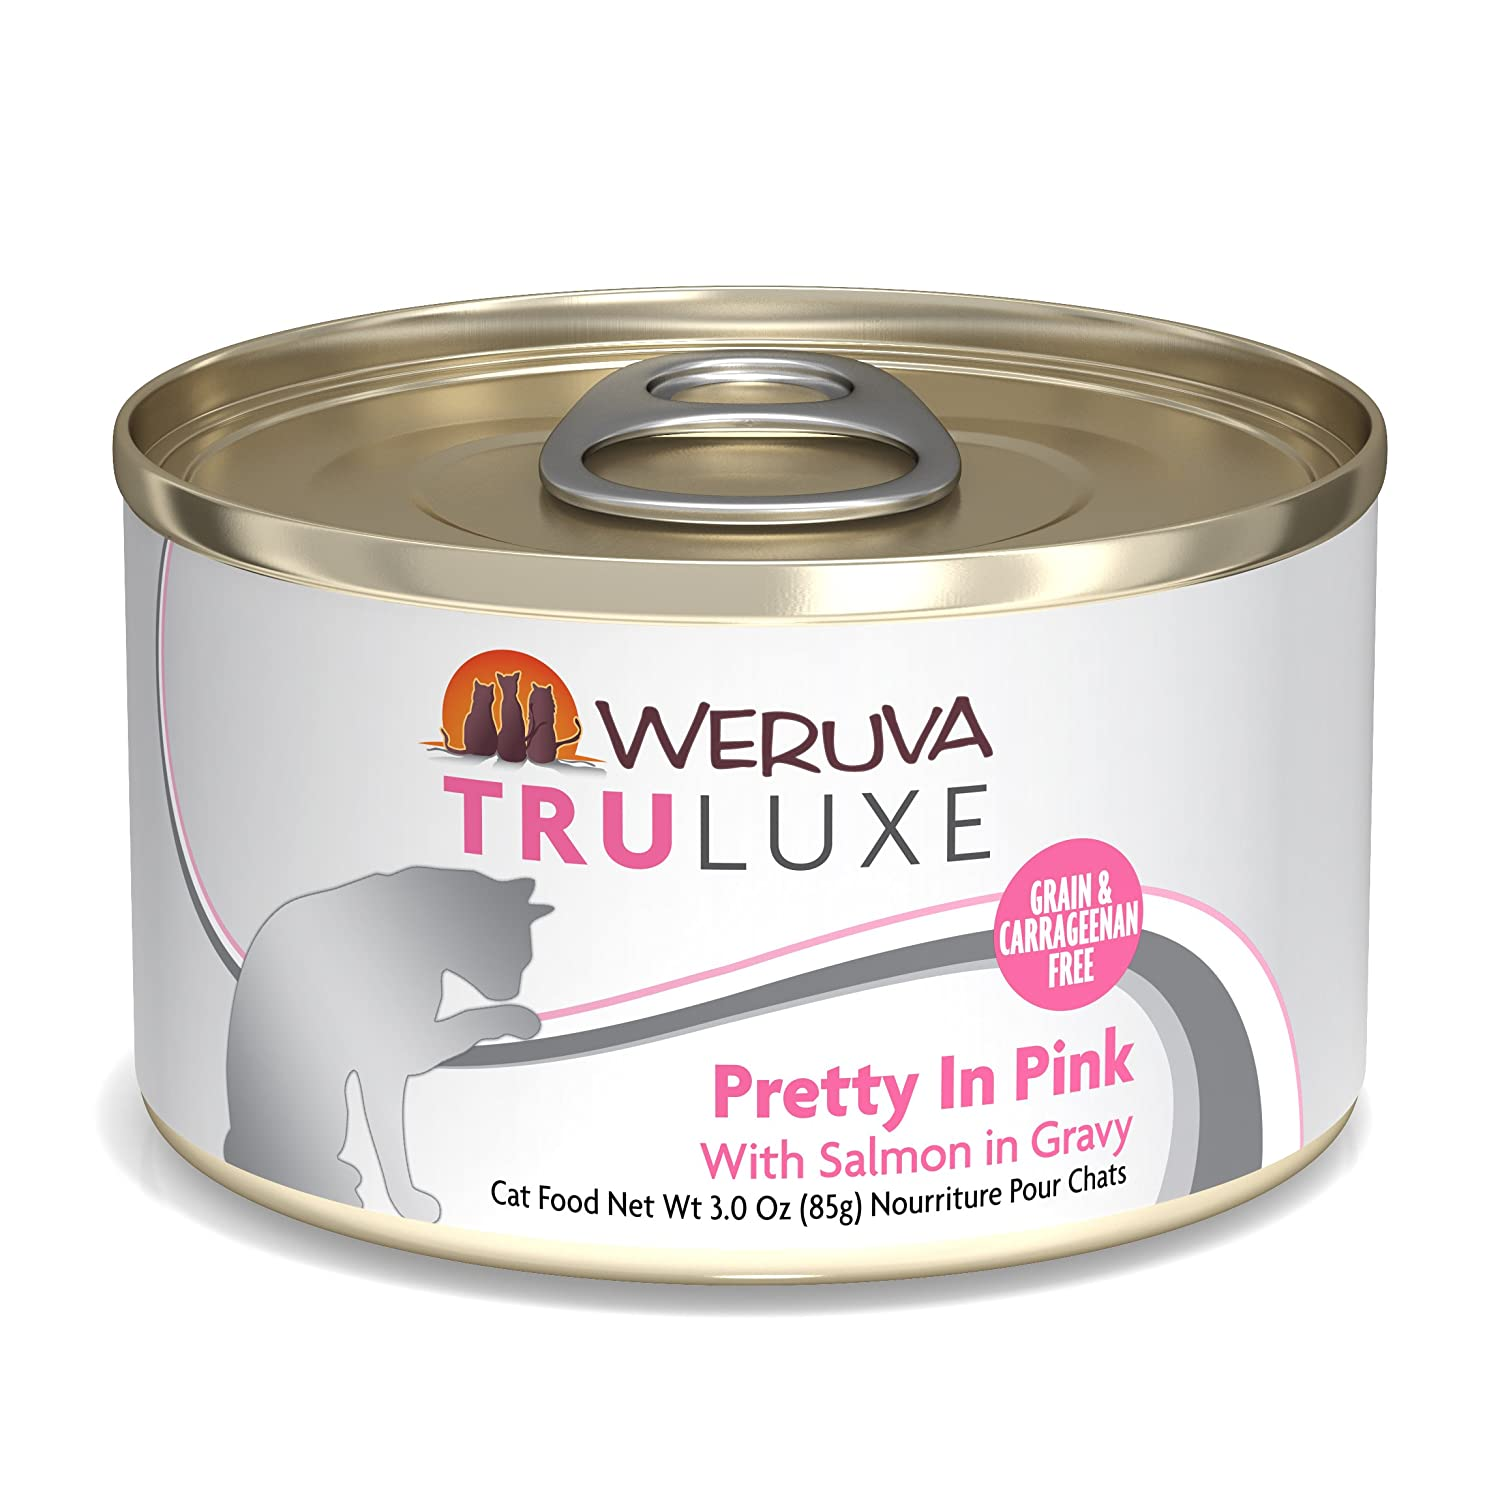 3Ounce Can (Pack of 24) Weruva TruLuxe Cat Food, Glam 'N Punk with Lamb & Duck in Gelée, 6oz Can (Pack of 24)